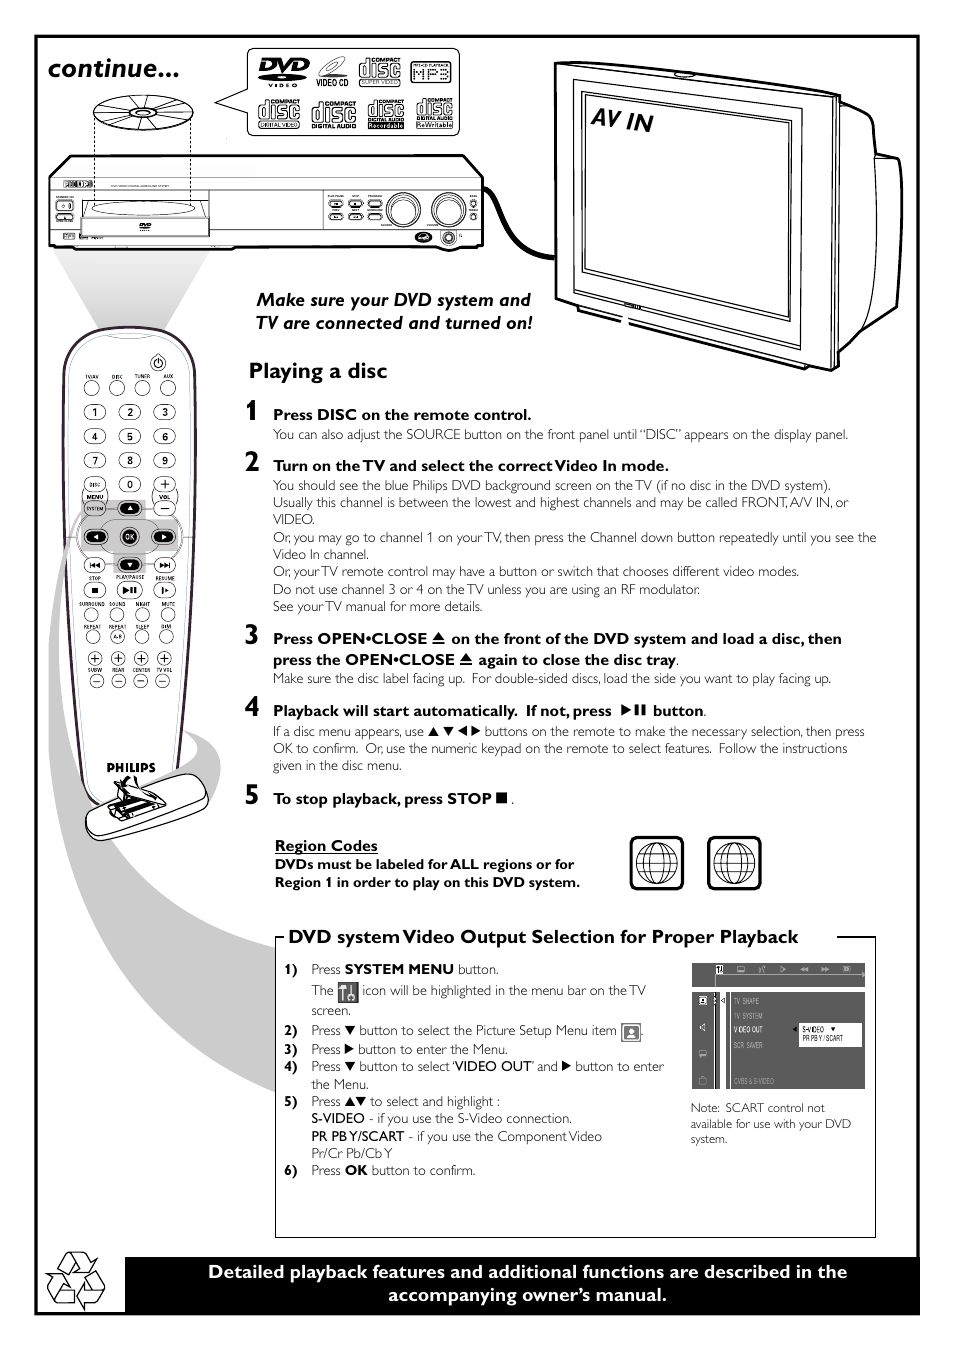 continue av in playing a disc philips mx3660d user manual rh manualsdir com Philips Product Manuals Philips Product Manuals